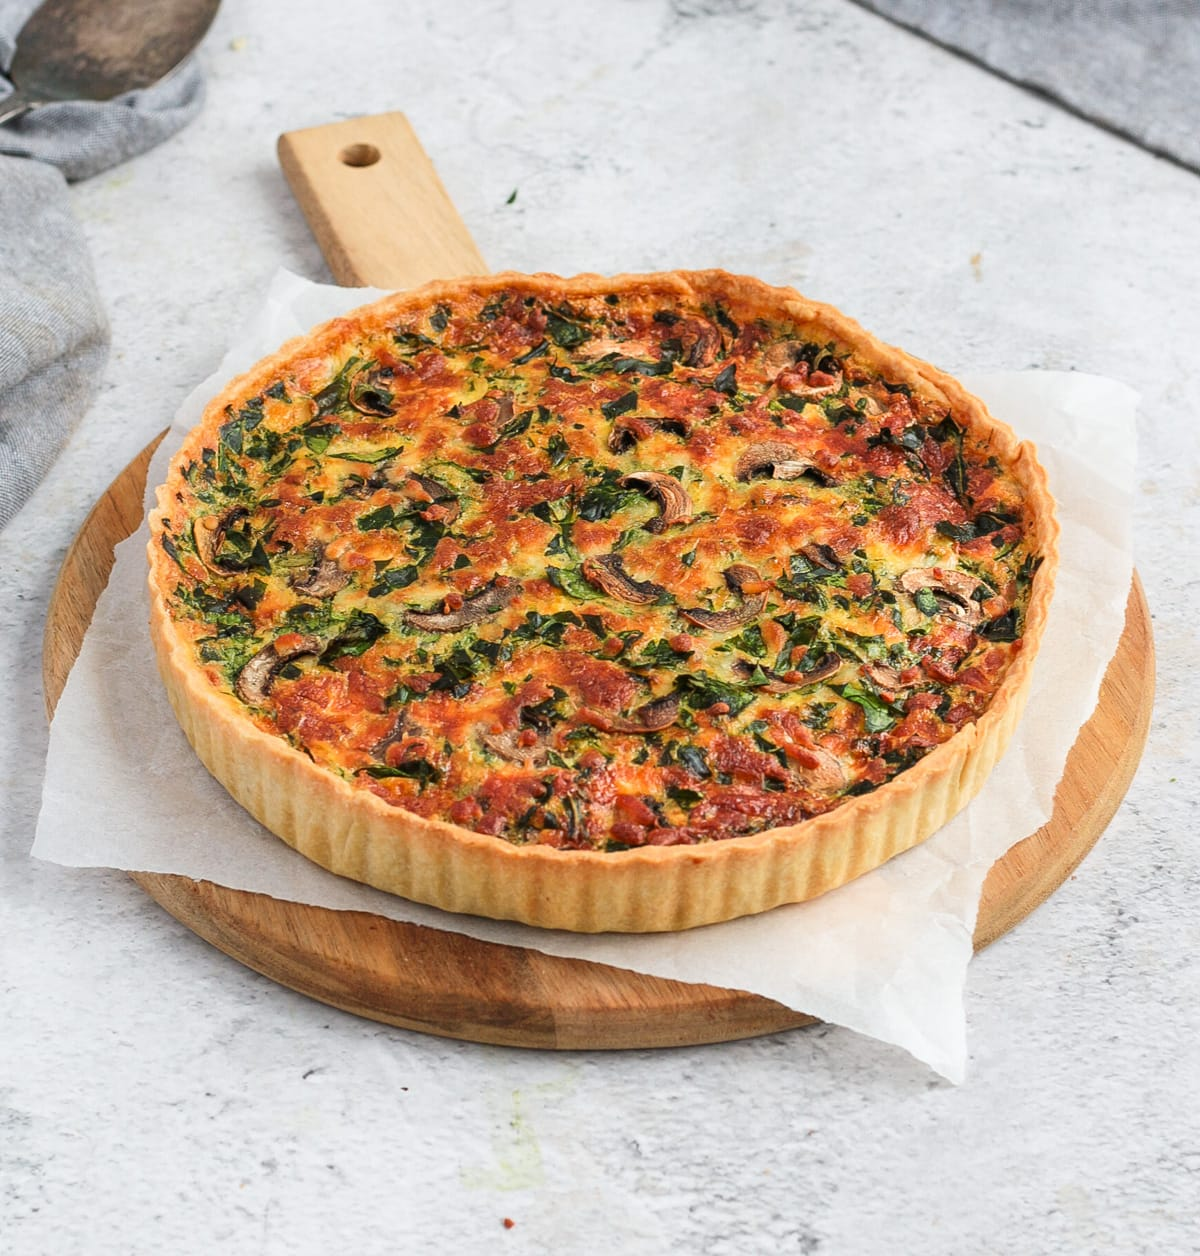 Quiche on a round wooden board over a grey surface